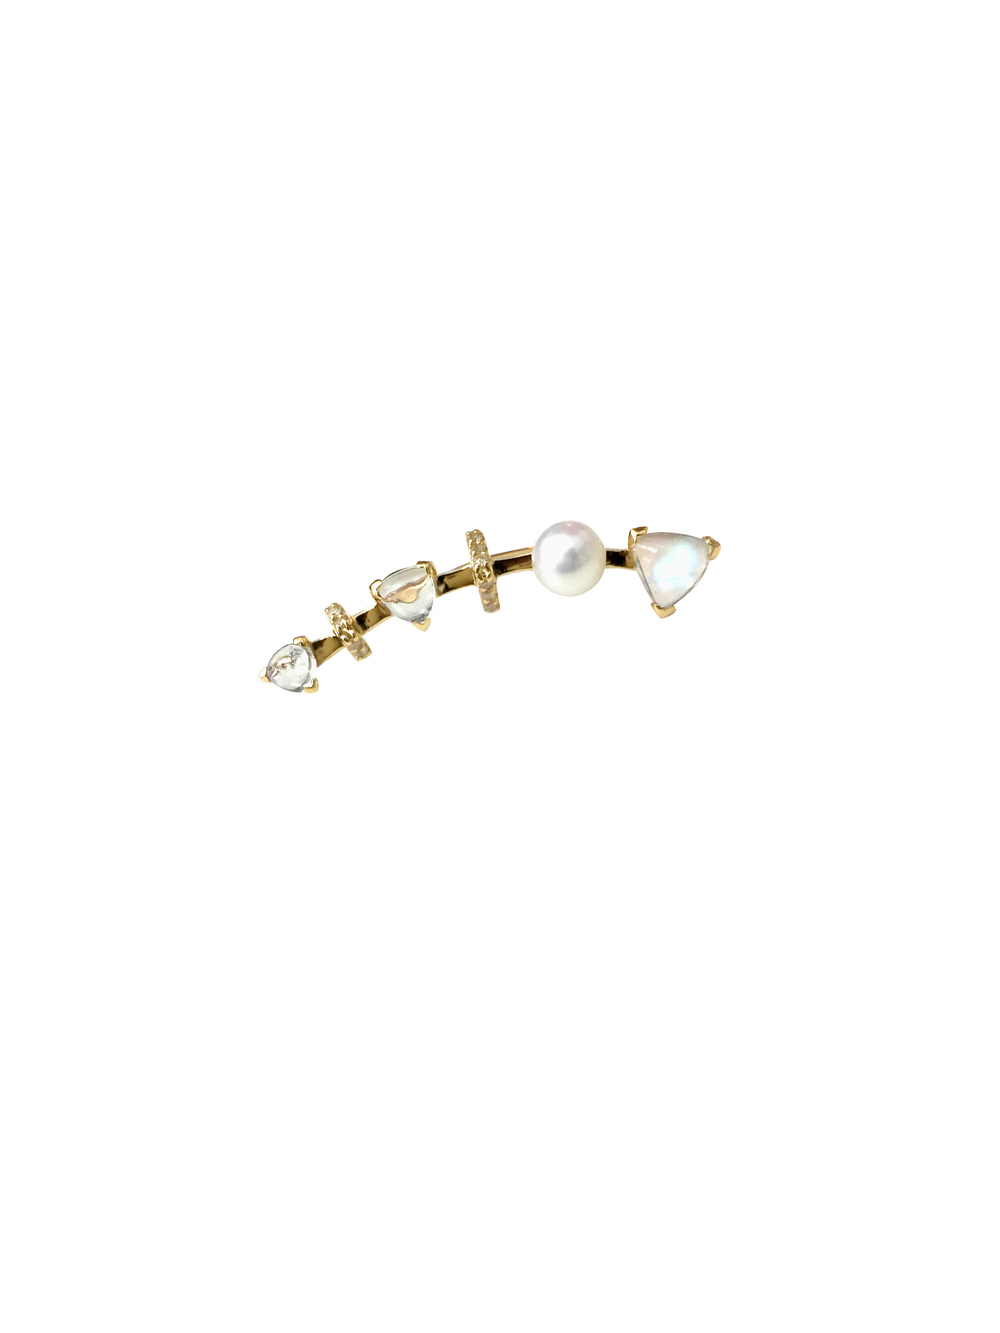 Marta E04123L Trillion and Pearl Ear Climber-YG-MS.jpg